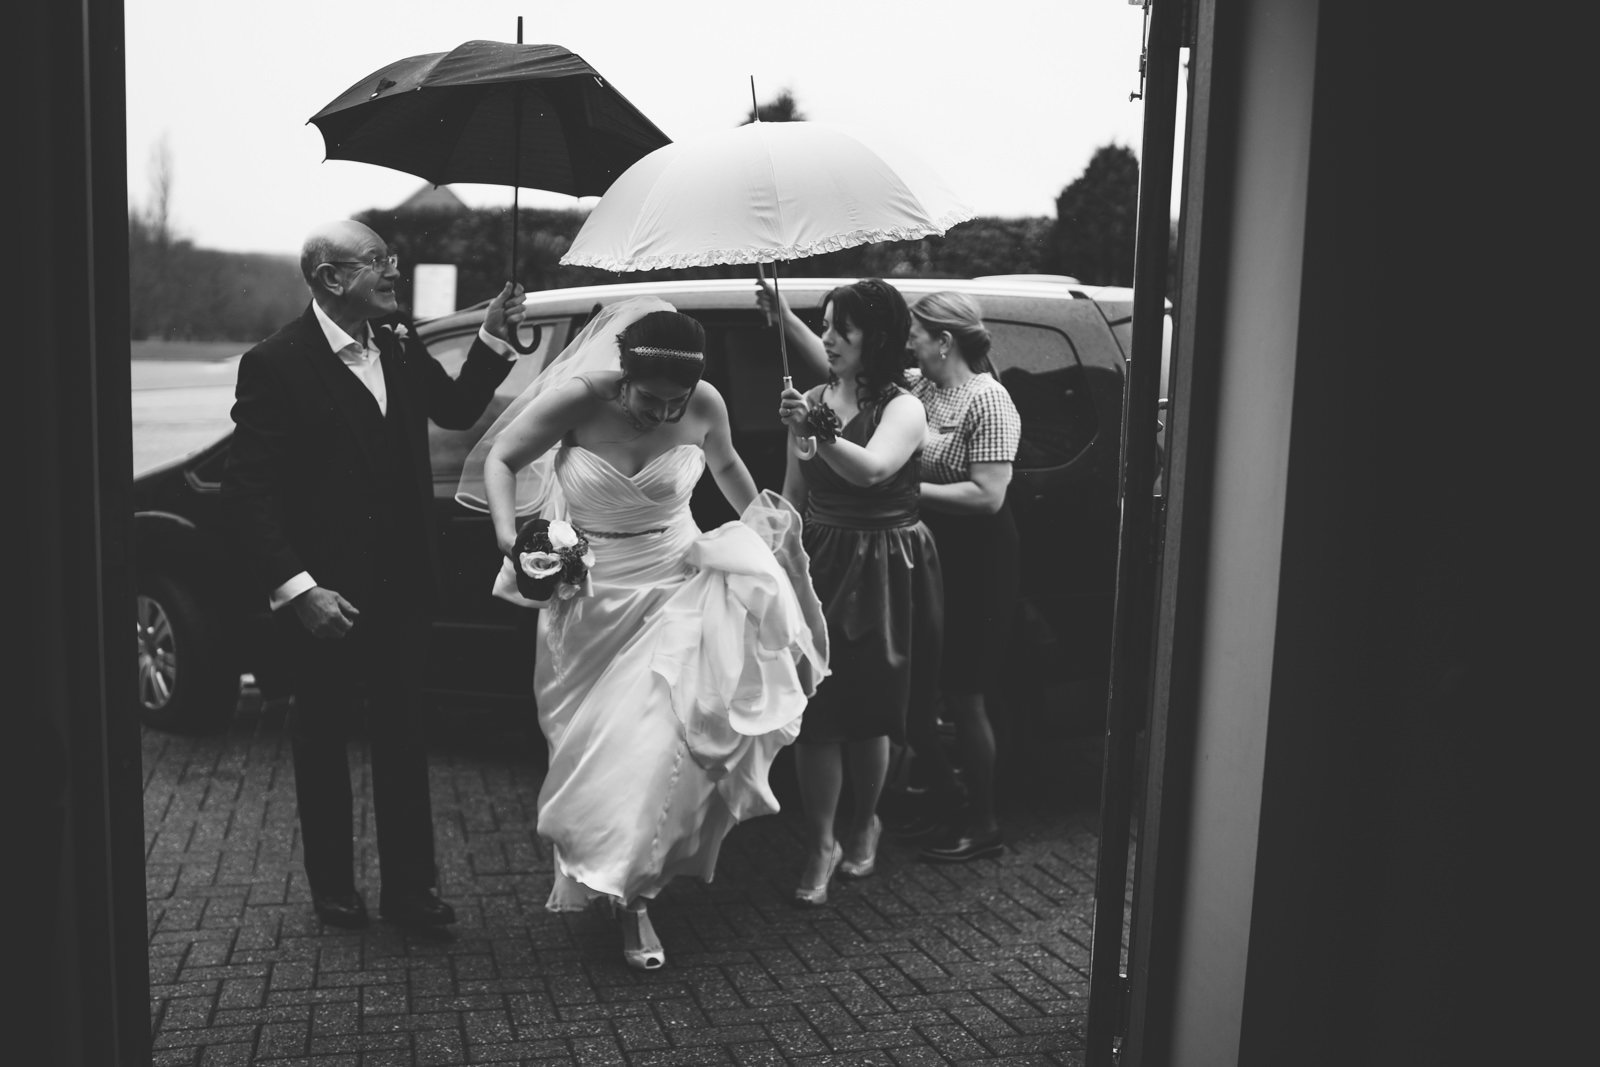 horsley lodge weddings, derbyshire weddings, derby wedding photographer